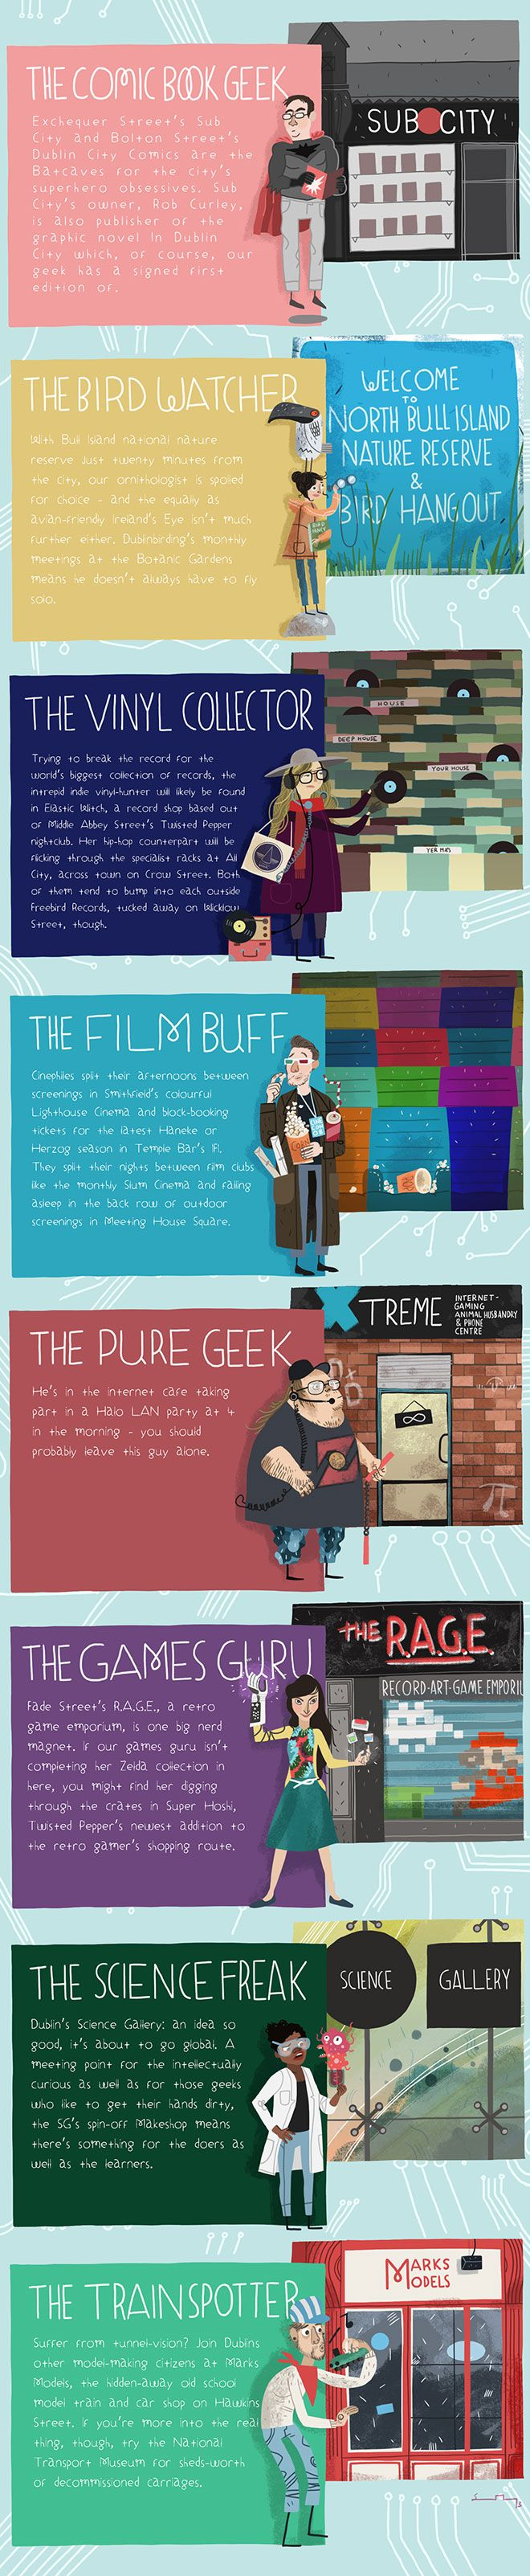 This illustrated guide to our city of specialists is the perfect guide for the 21st century trainspotter, the gamers and the makers, the music-lovers and the film die-hards! #nerds #geeks #lovedublin #comics #vinyl #film #science #SteveMcCarthy